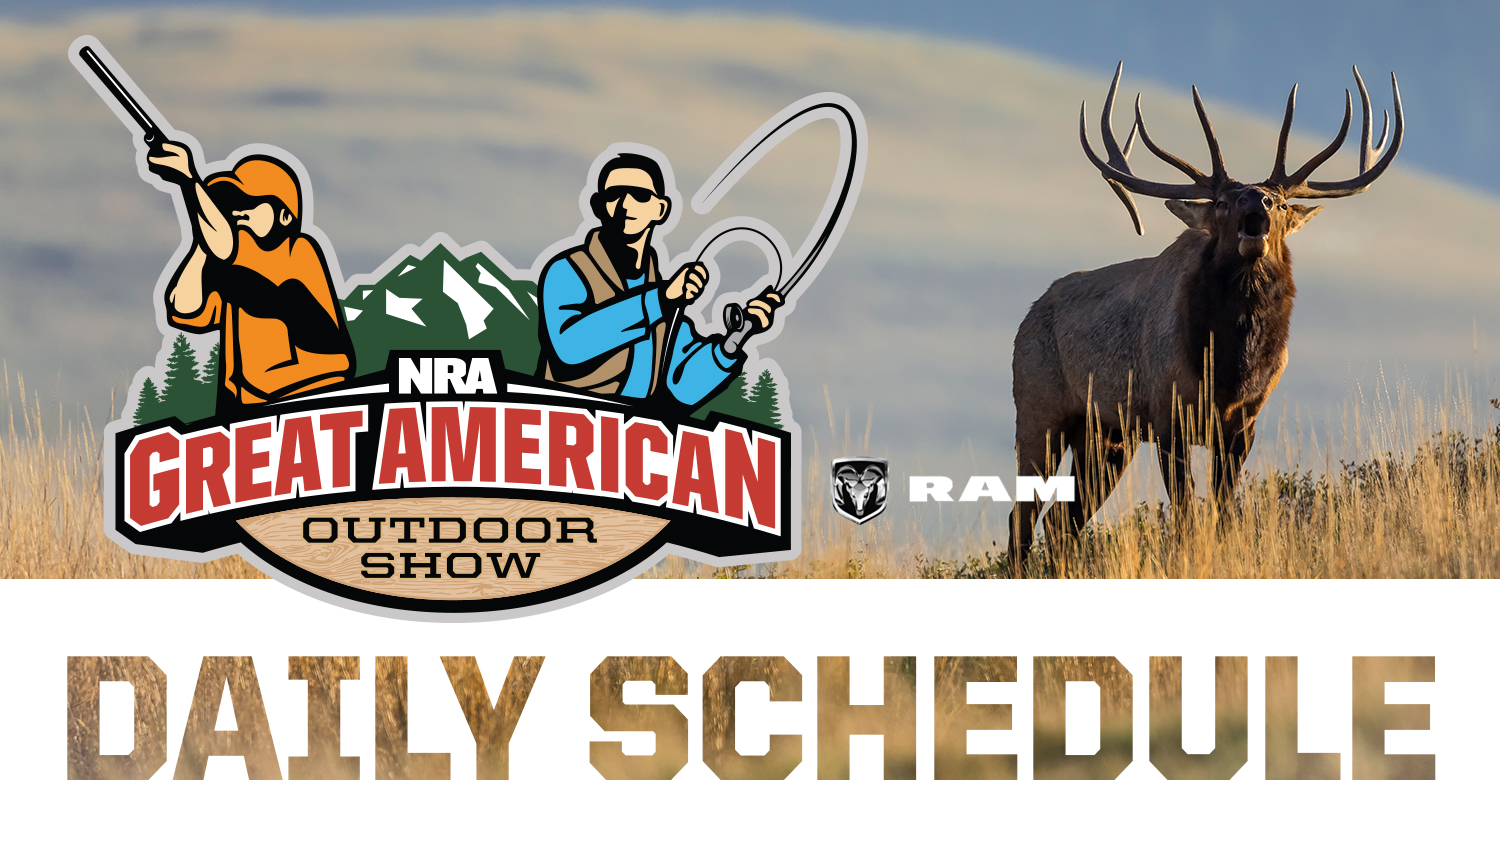 2019 Great American Outdoor Show Daily Schedule - Tuesday, February 5